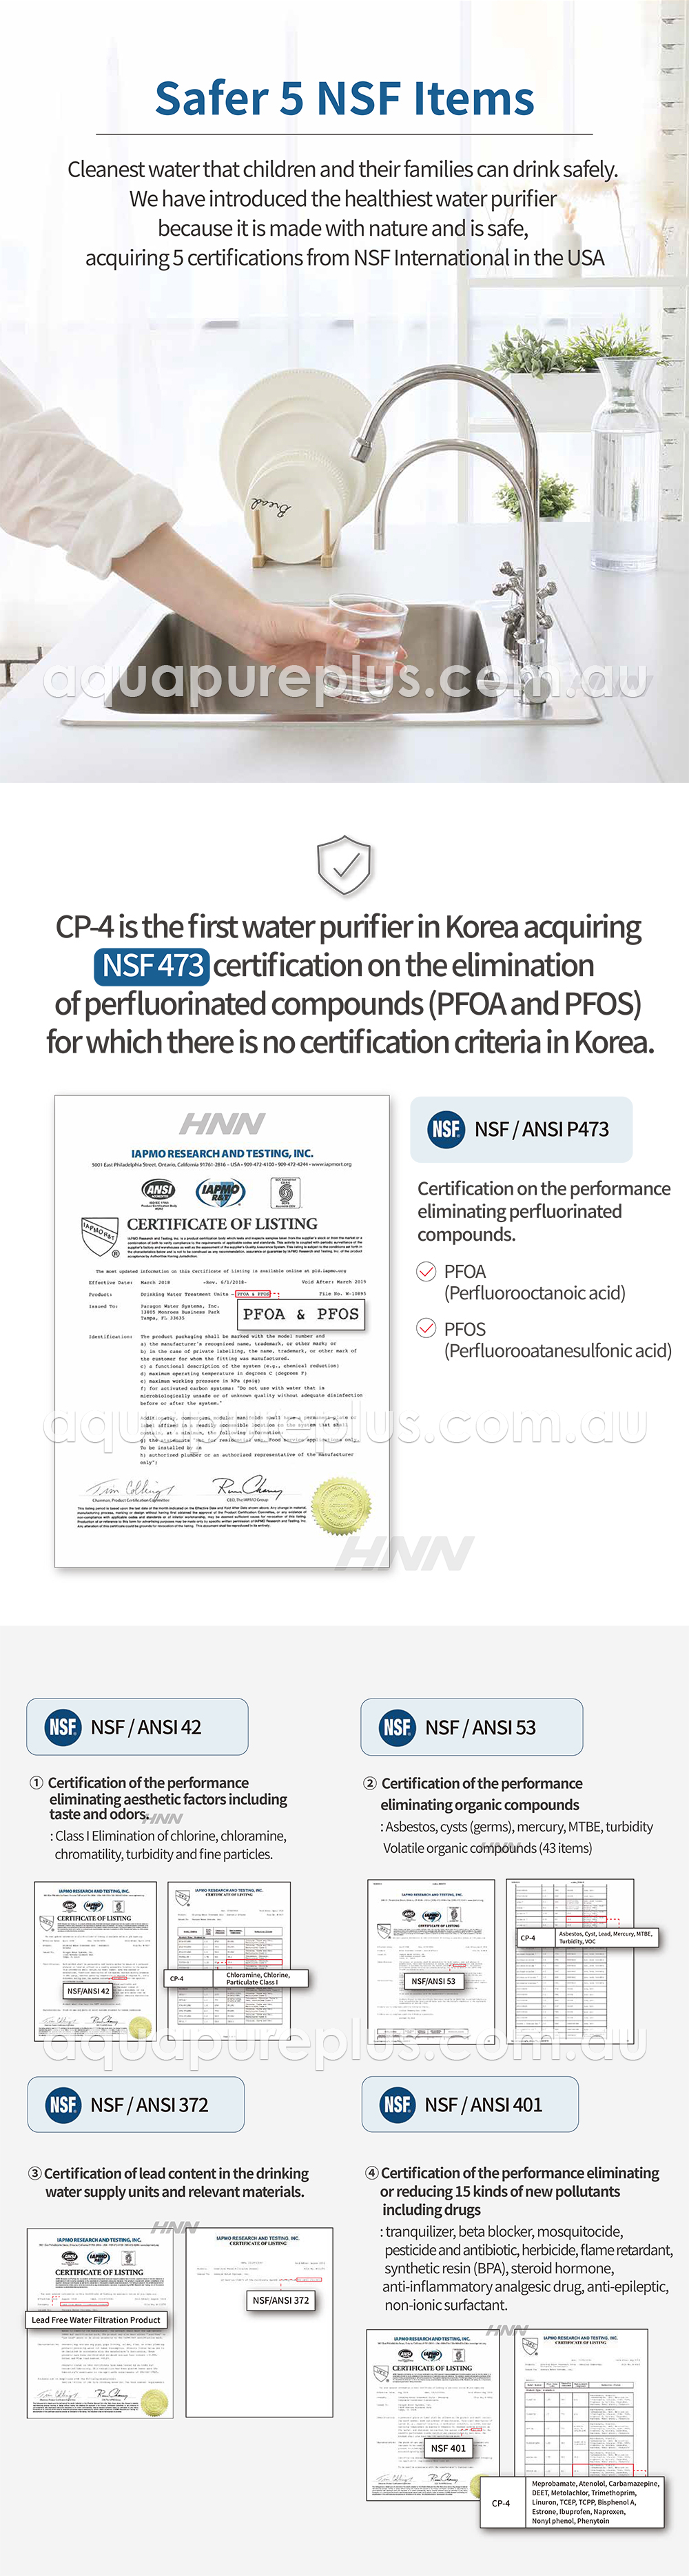 CP-4_Paragon-Filter_NSF-Certifications3.